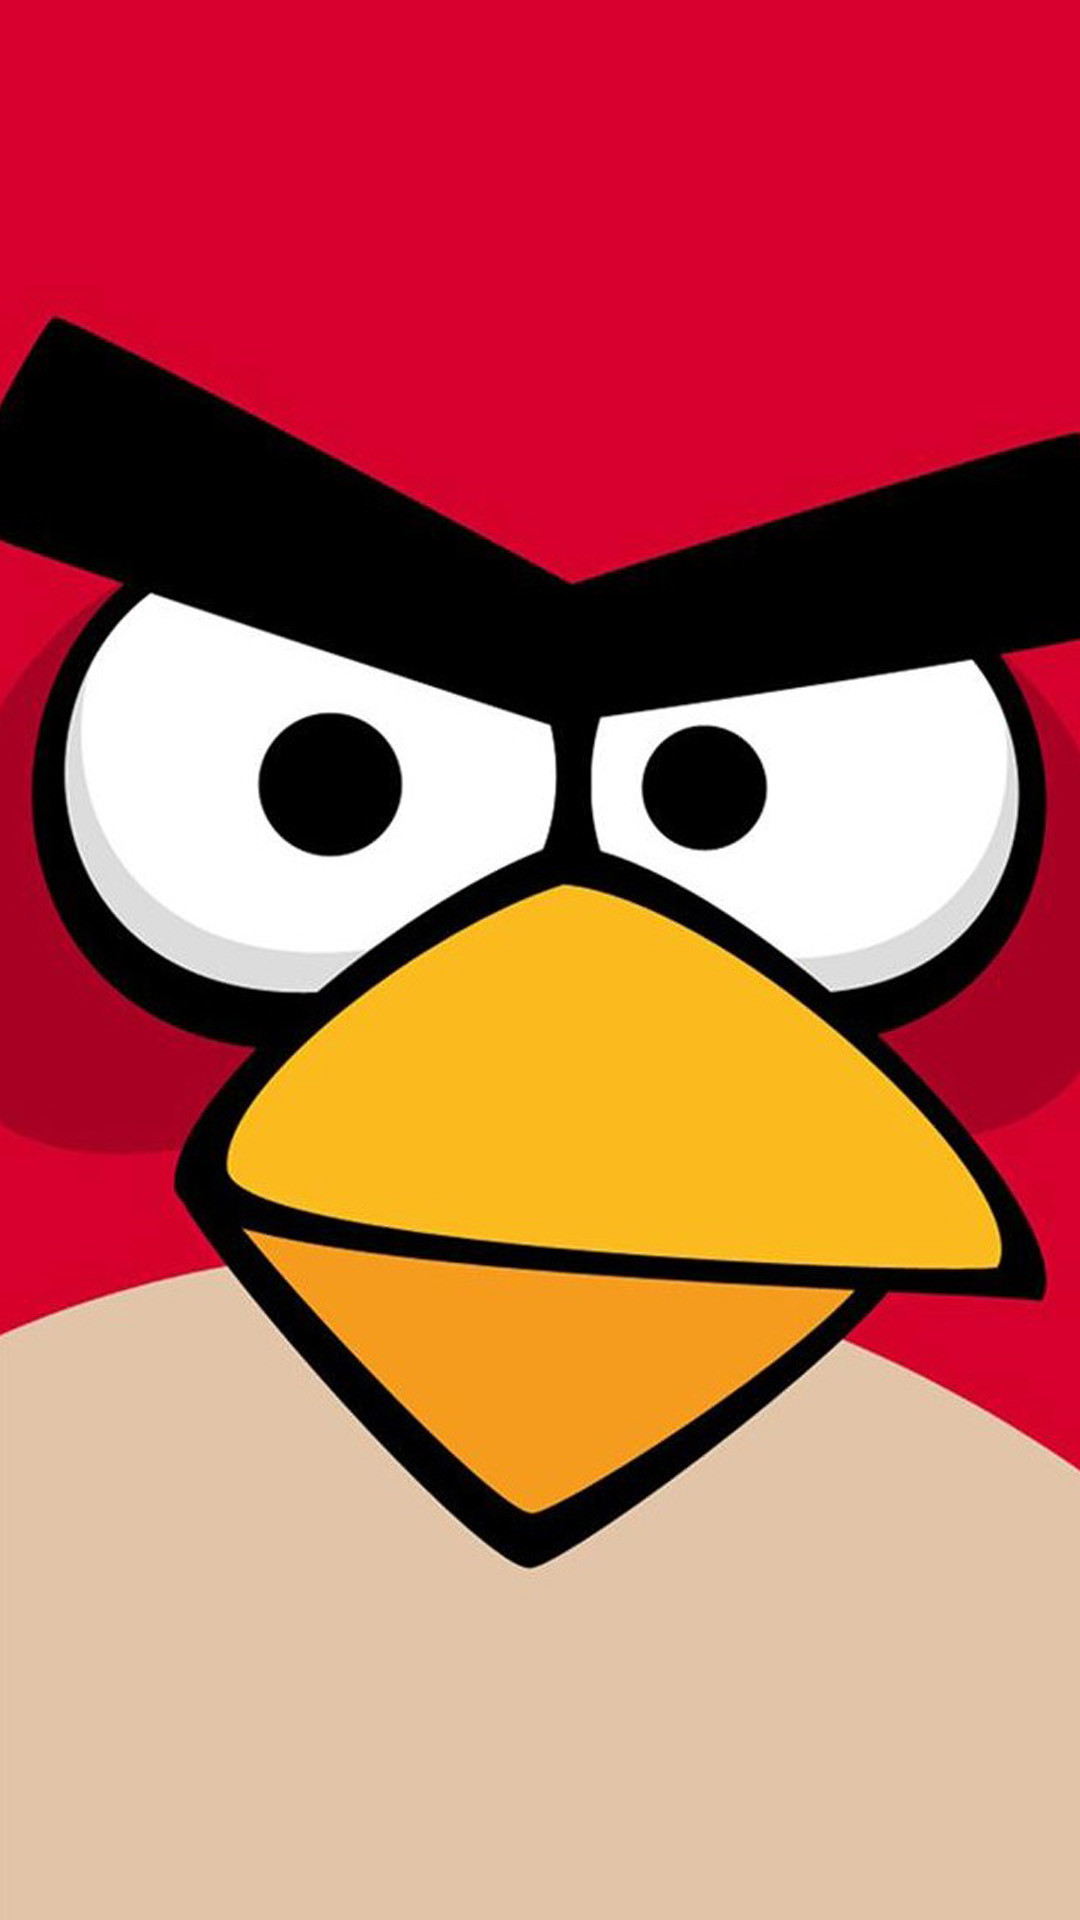 1080x1920 Angry Bird Game Background #iPhone #6 #plus #wallpaper